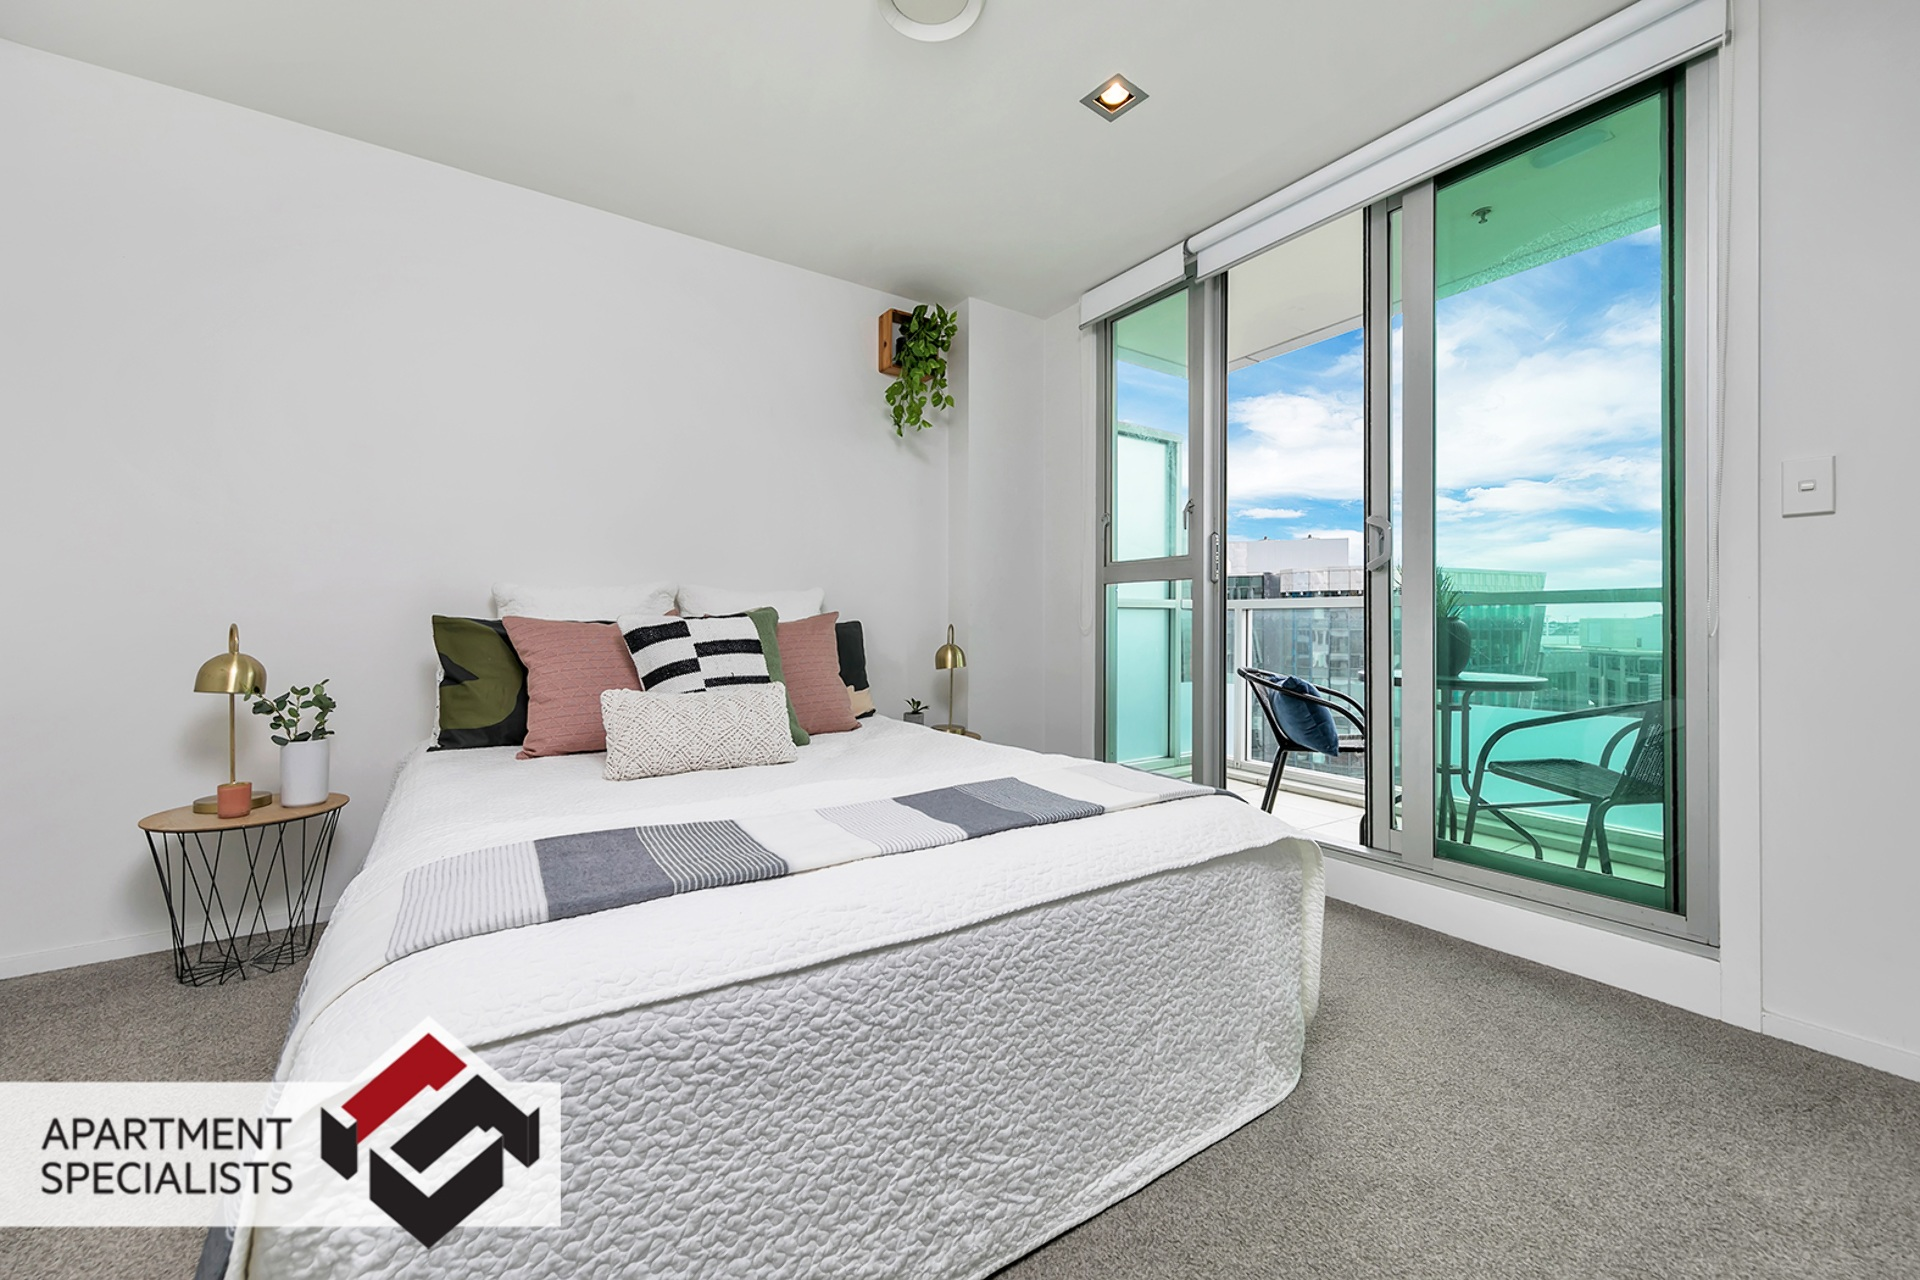 9 | 85 Beach Road, City Centre | Apartment Specialists